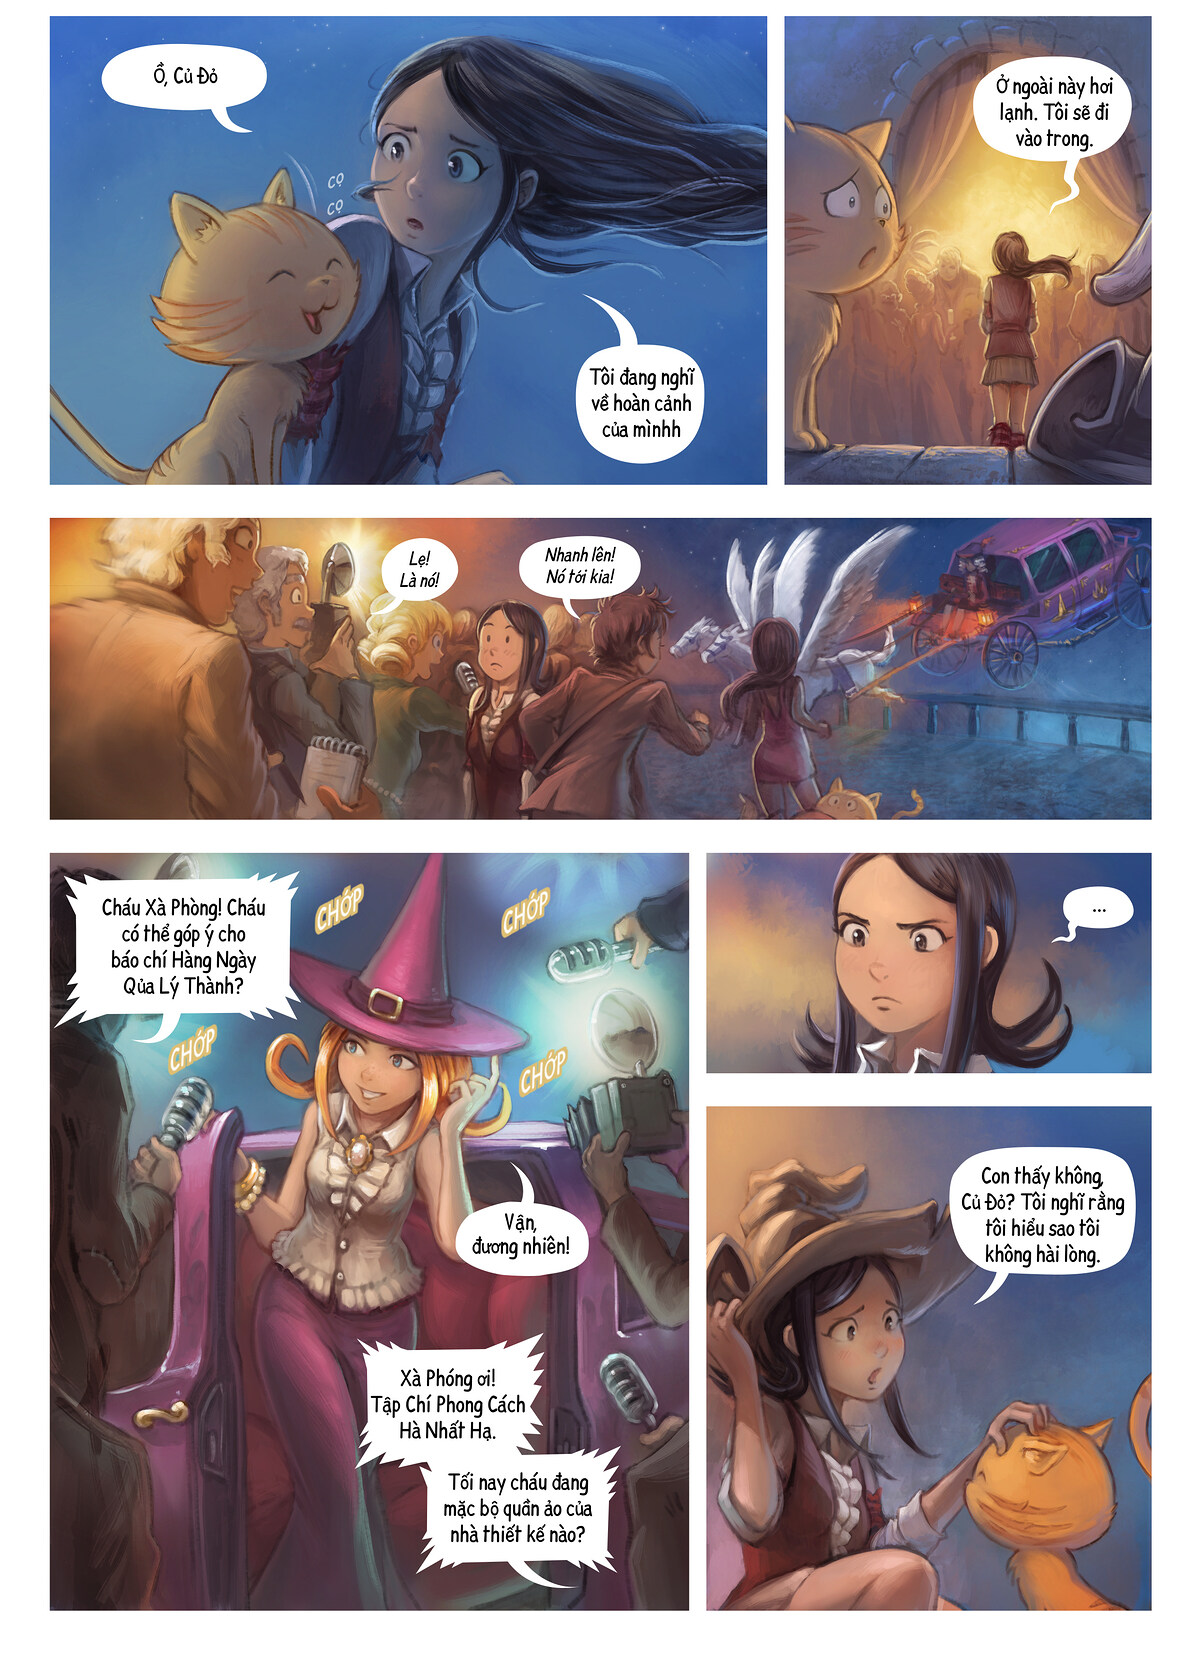 A webcomic page of Pepper&Carrot, Tập 28 [vi], trang 4